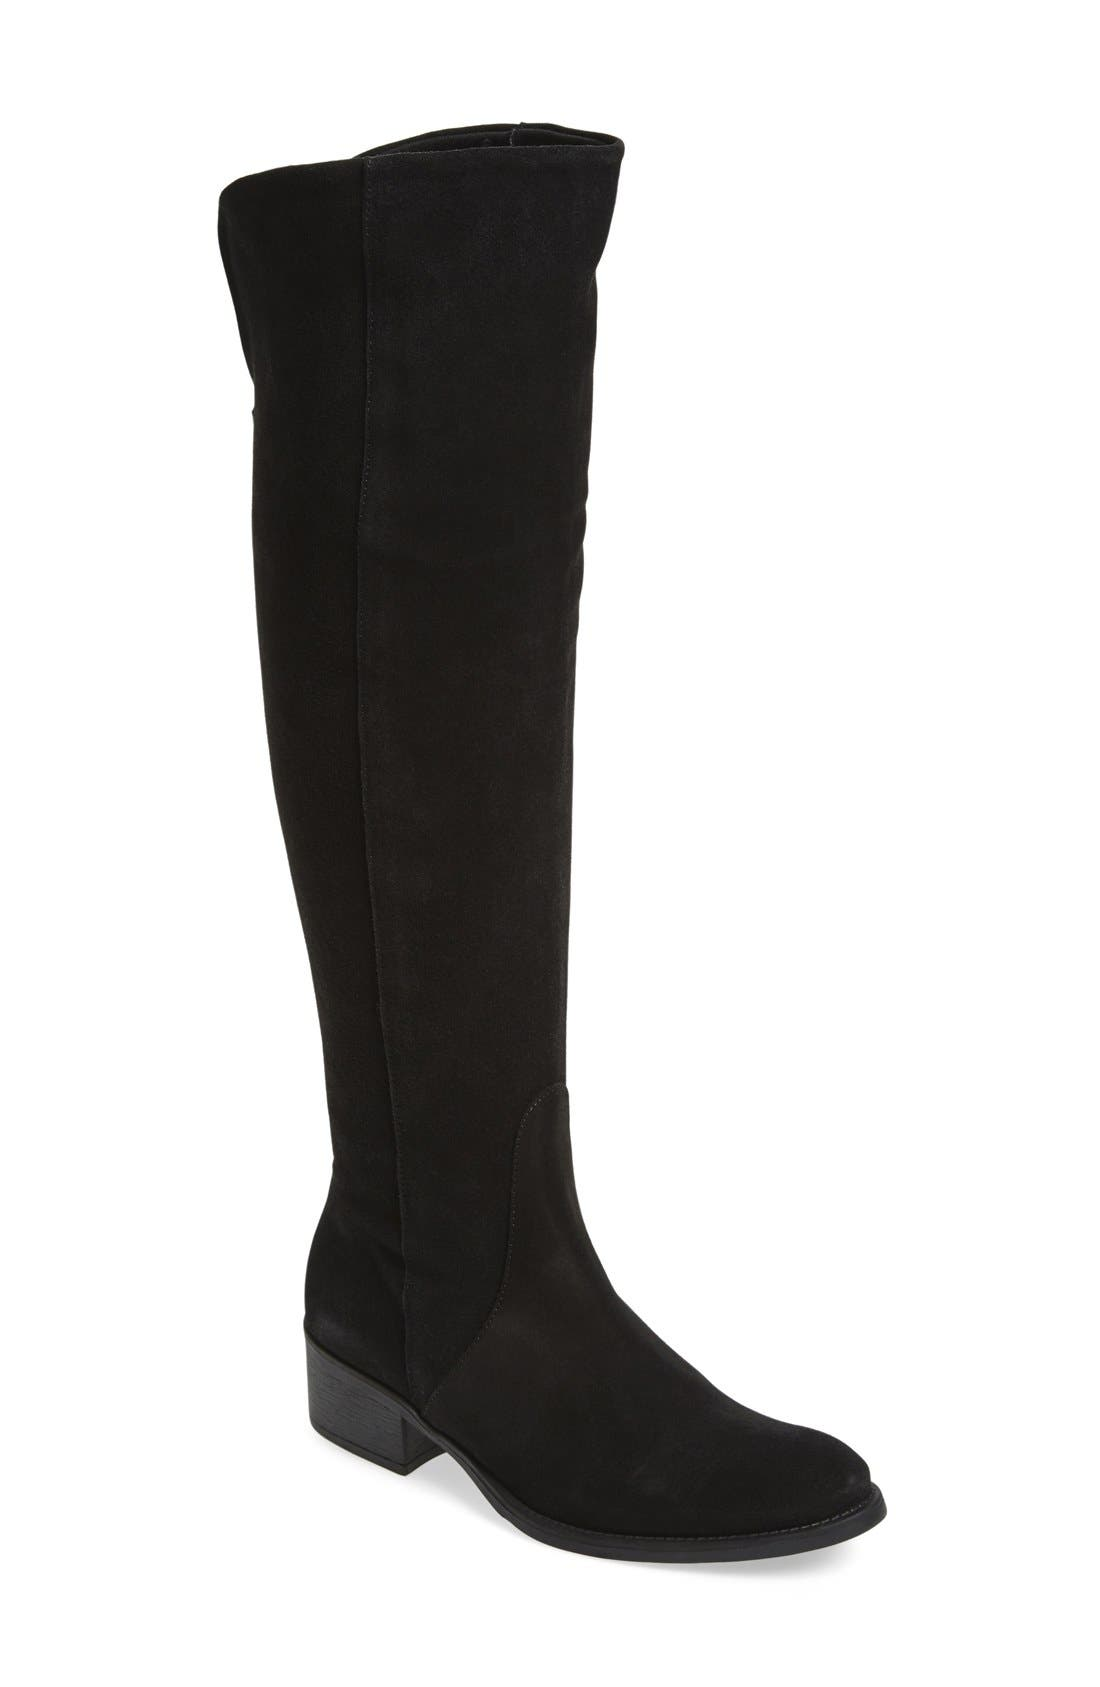 Main Image - Toni Pons 'Tallin' Over-The-Knee Riding Boot (Women)